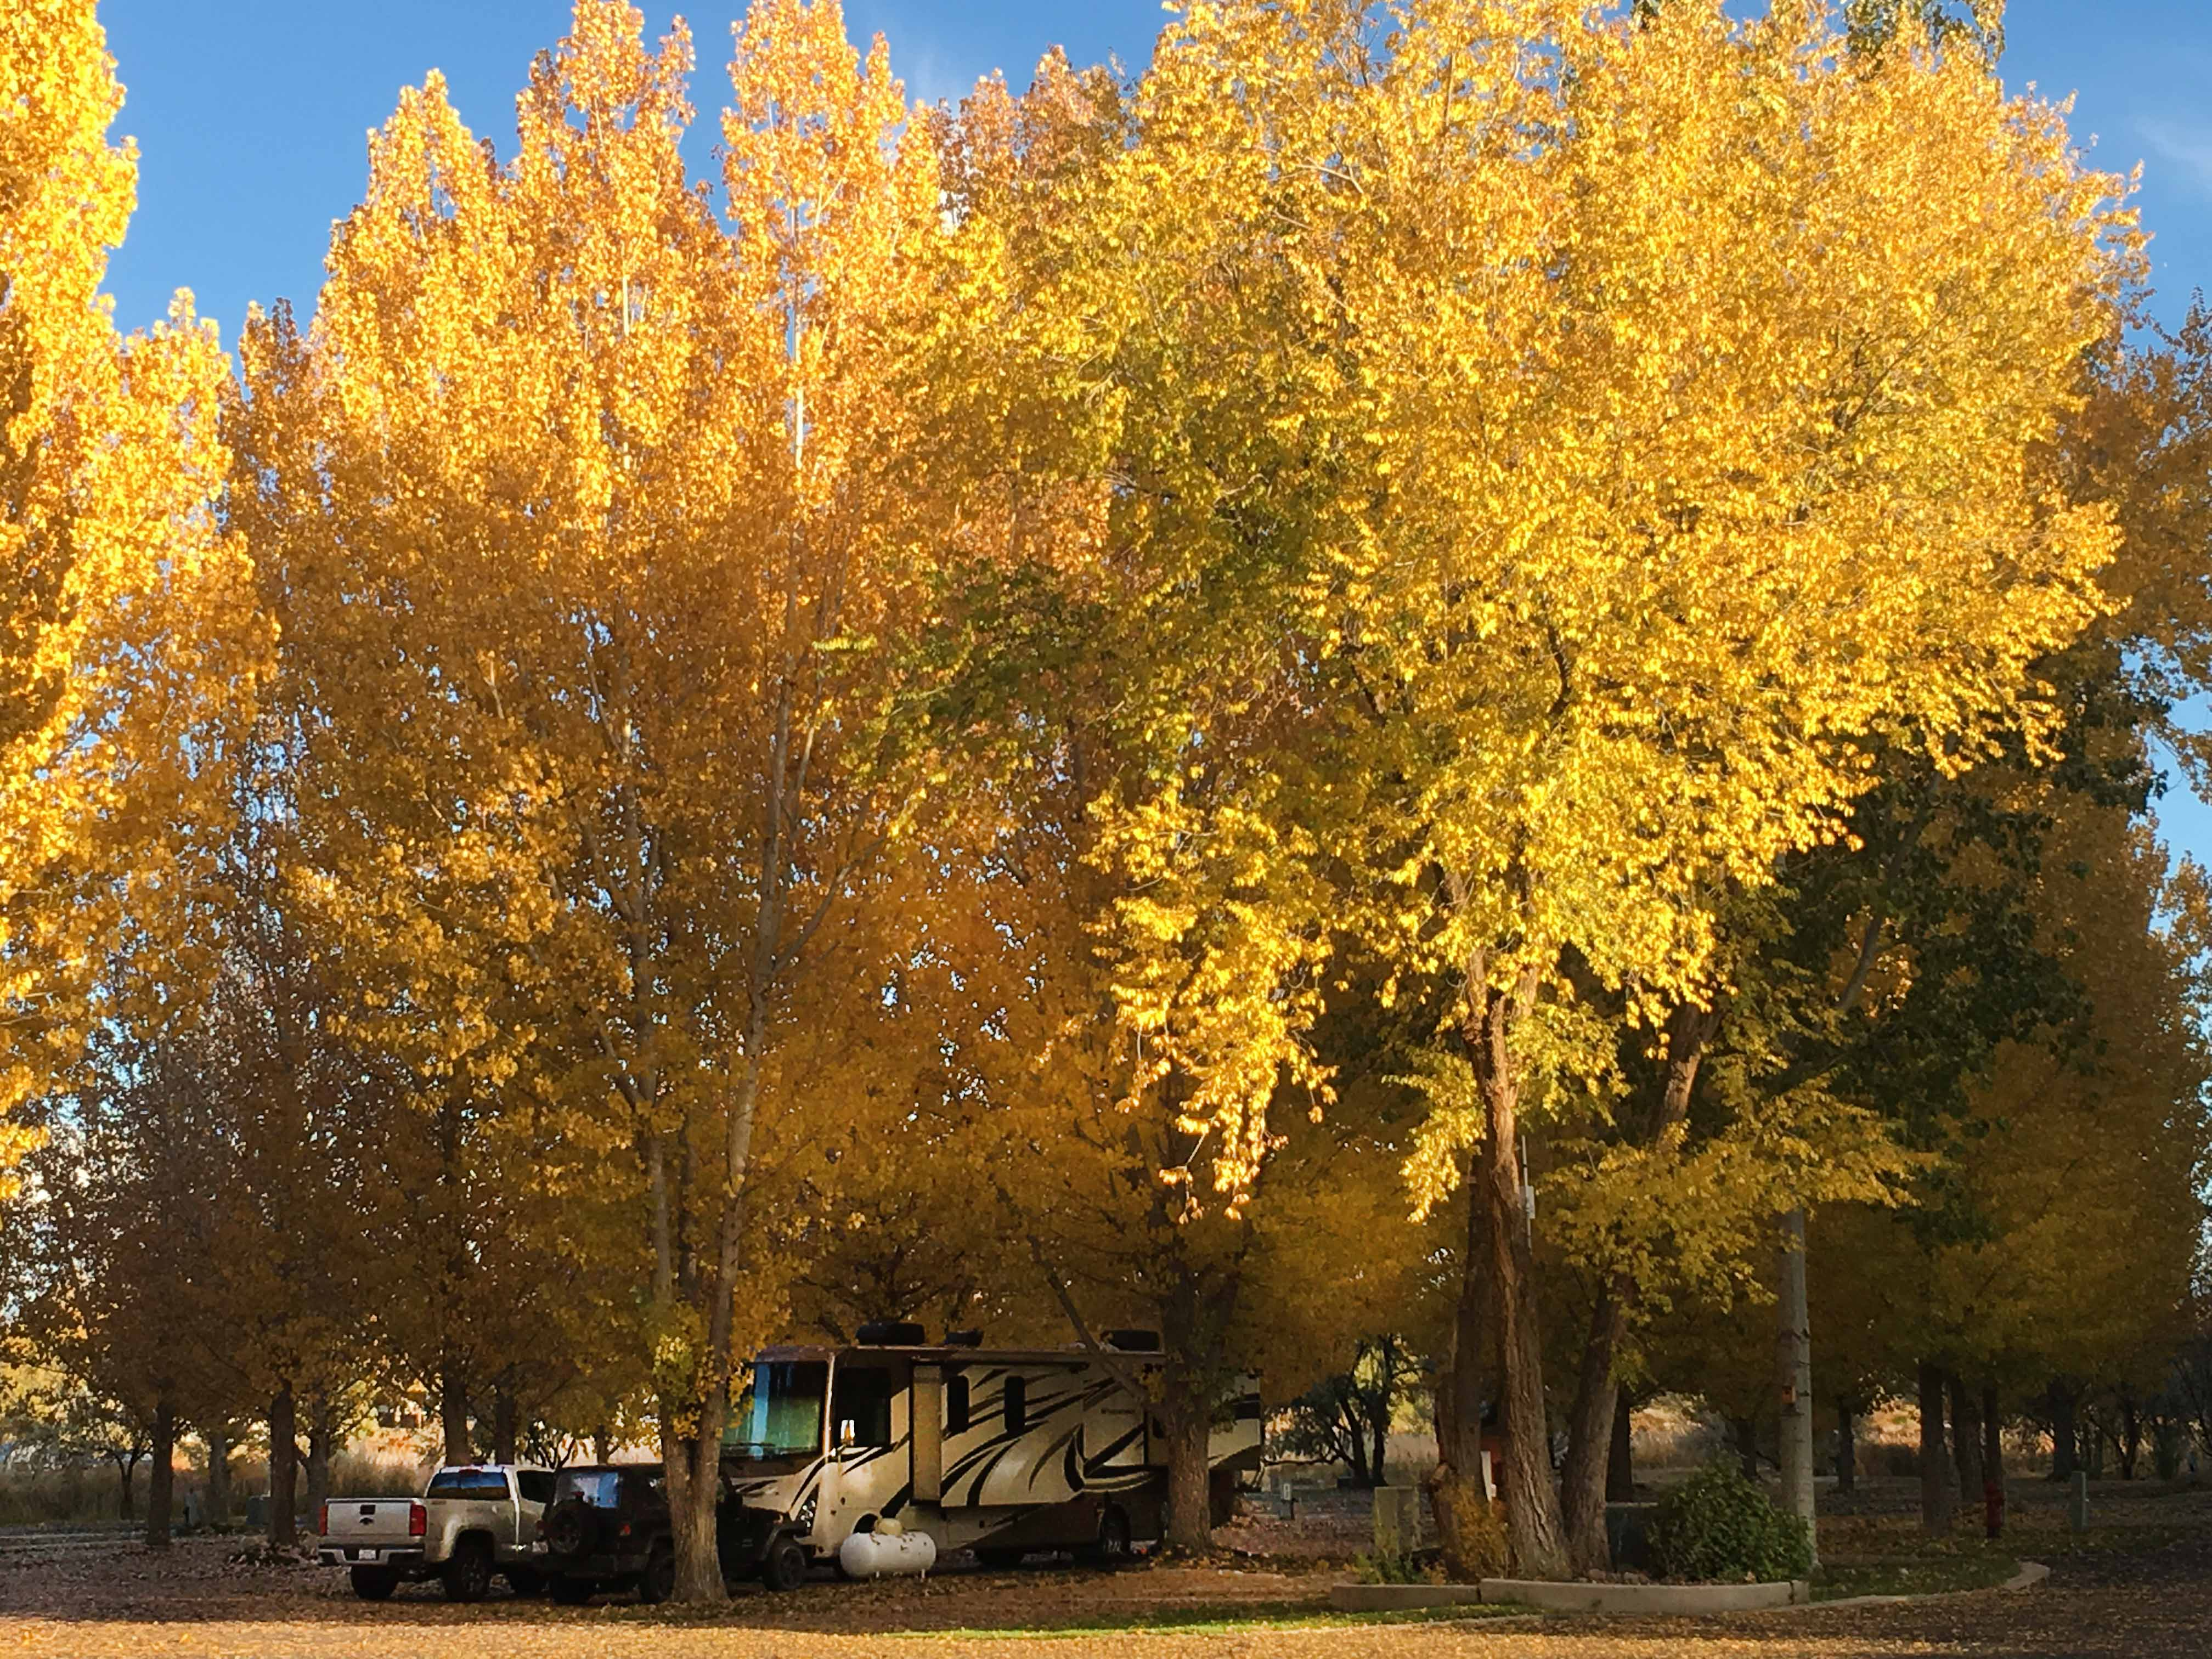 A motorhome parked under aspen trees ablaze with fall color.